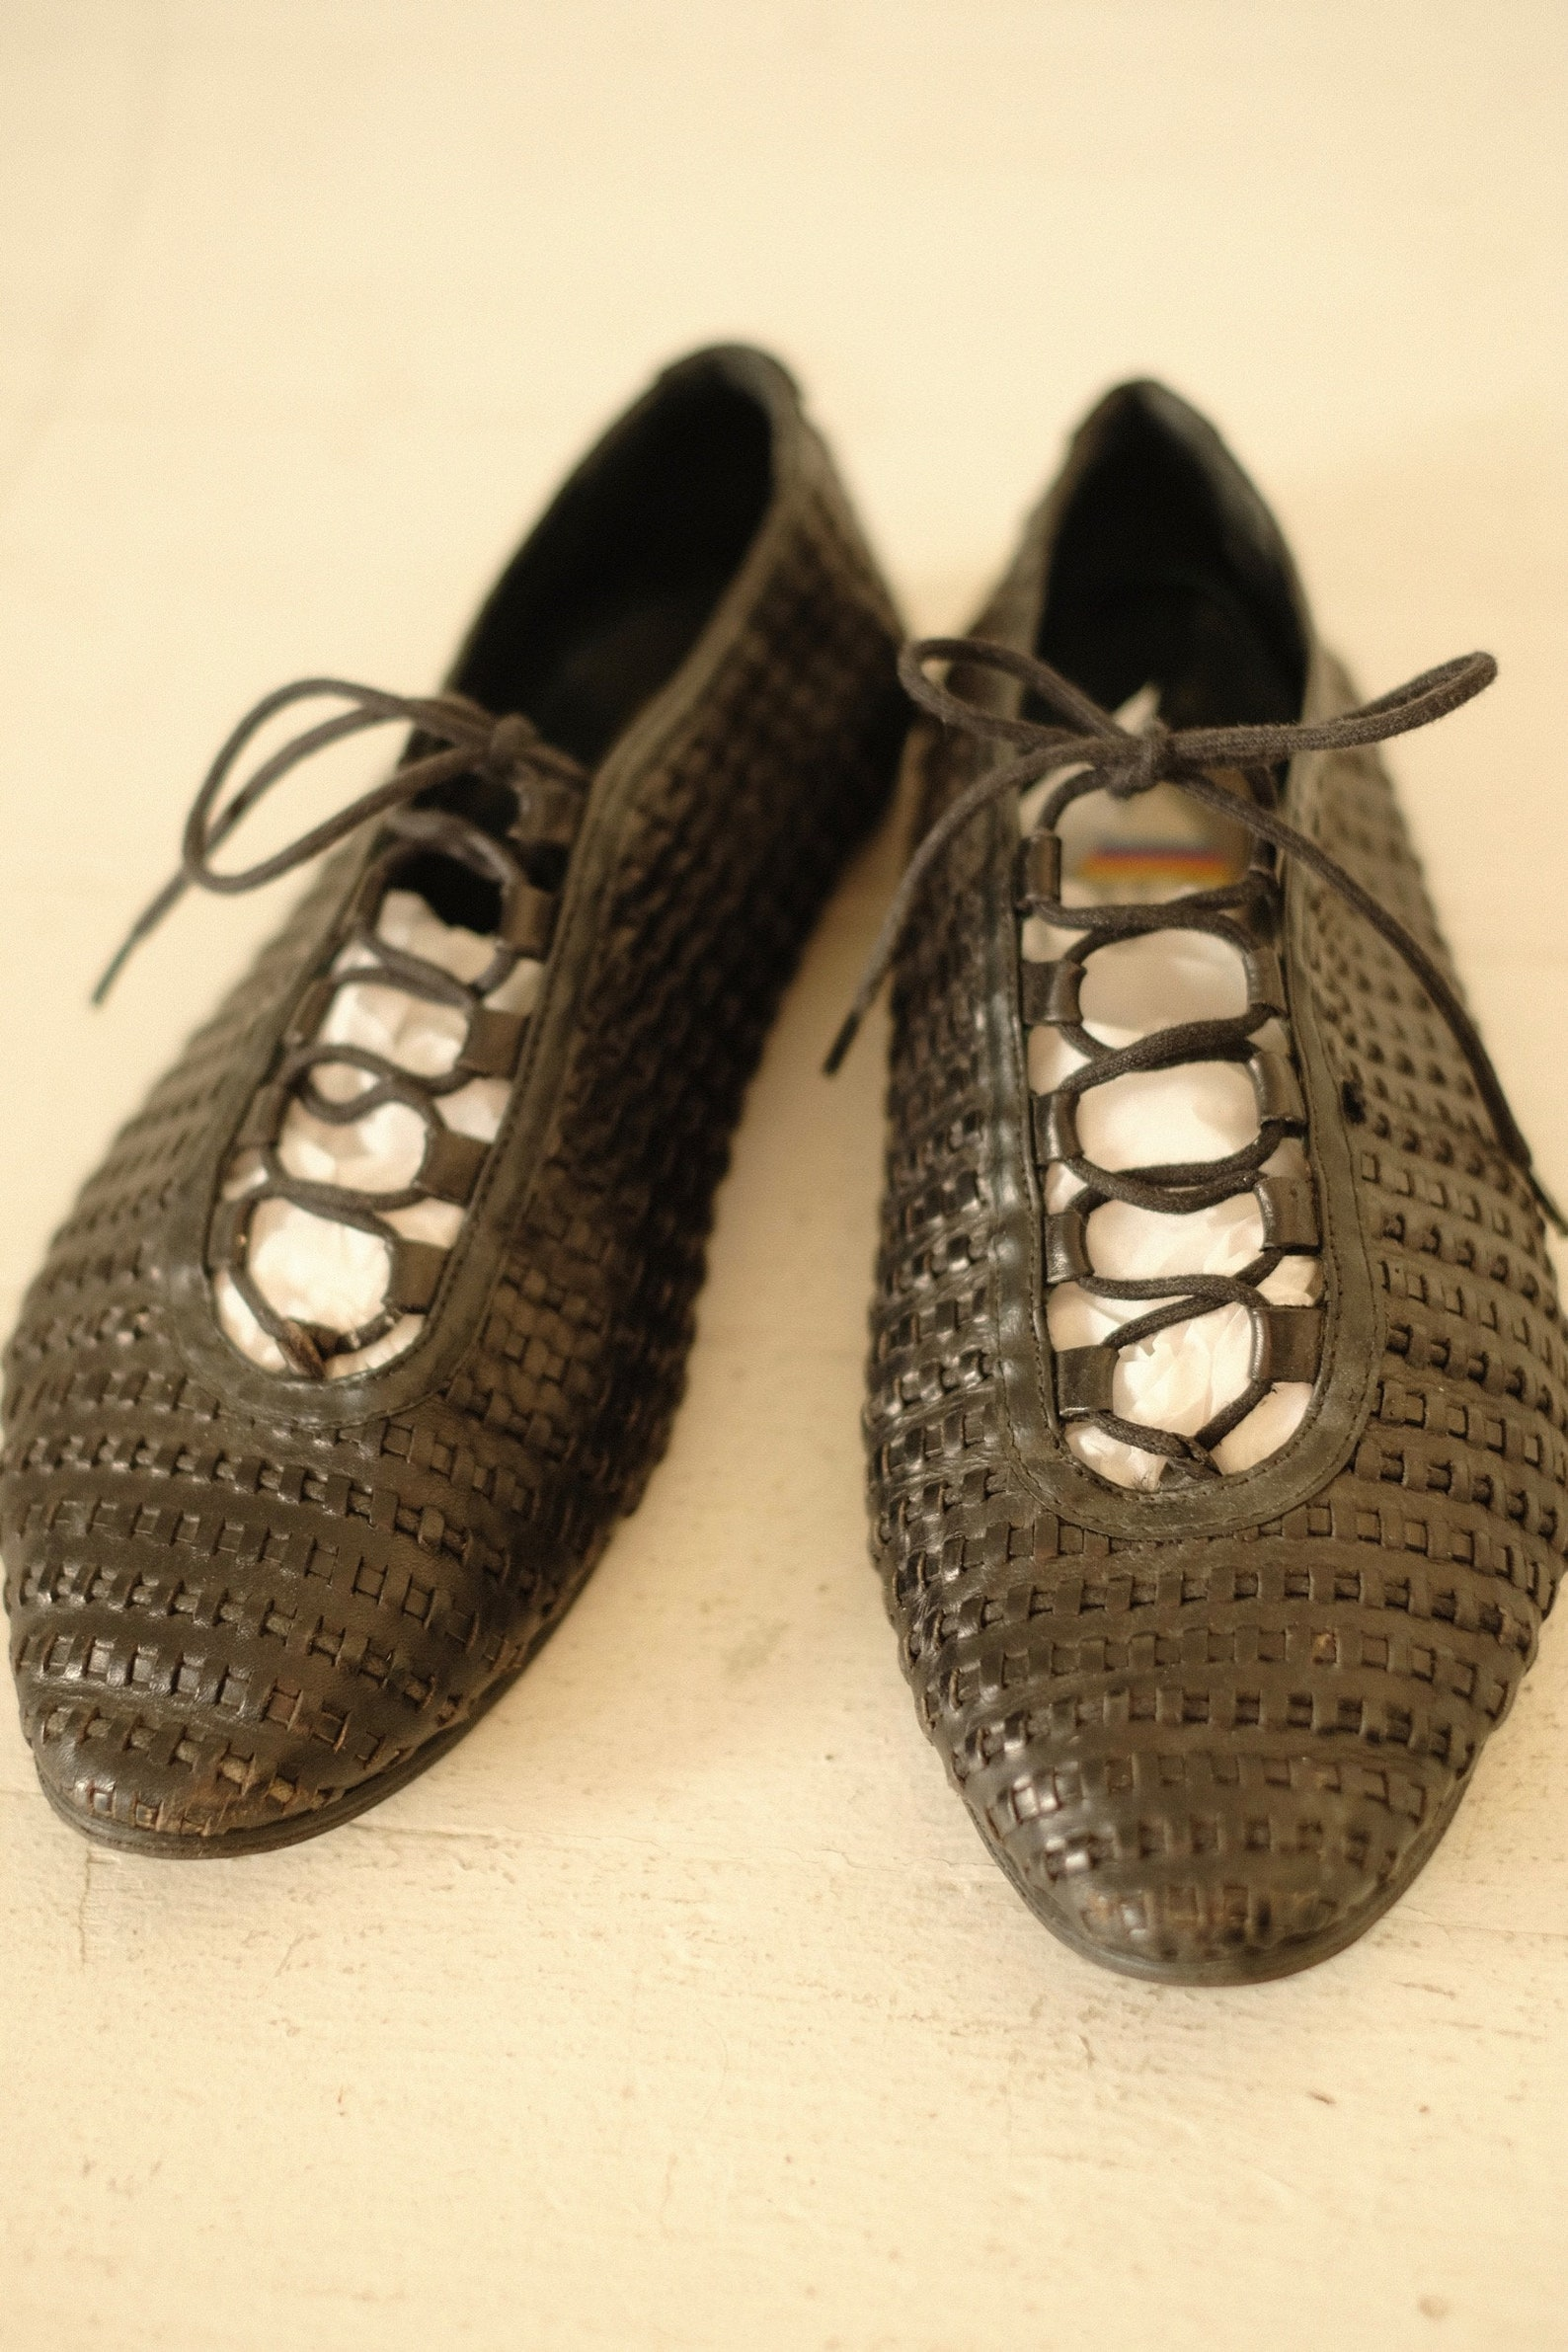 woven oxfords size 7 // vintage black woven lace up flats womens leather beach sandals almond toe ladies shoes ballet flats